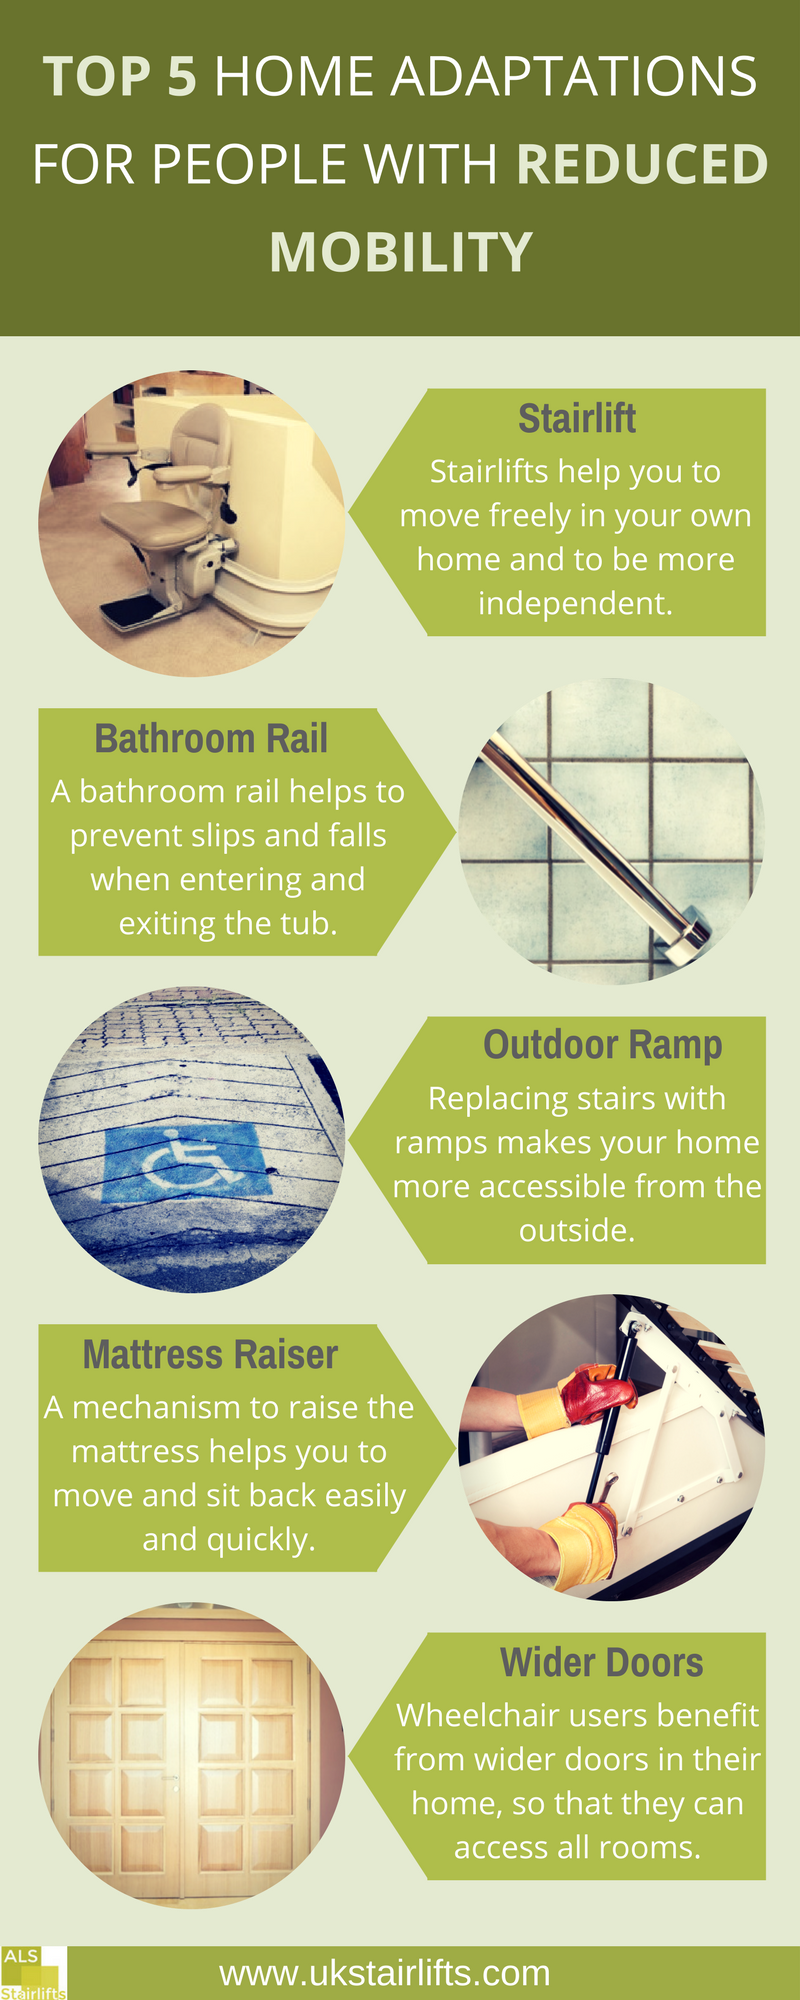 Infographic detailing the best home adaptations available for someone with decreased mobility. Including: stairlifts, bathroom rail, outdoor ramp, mattress raiser and wider doors.